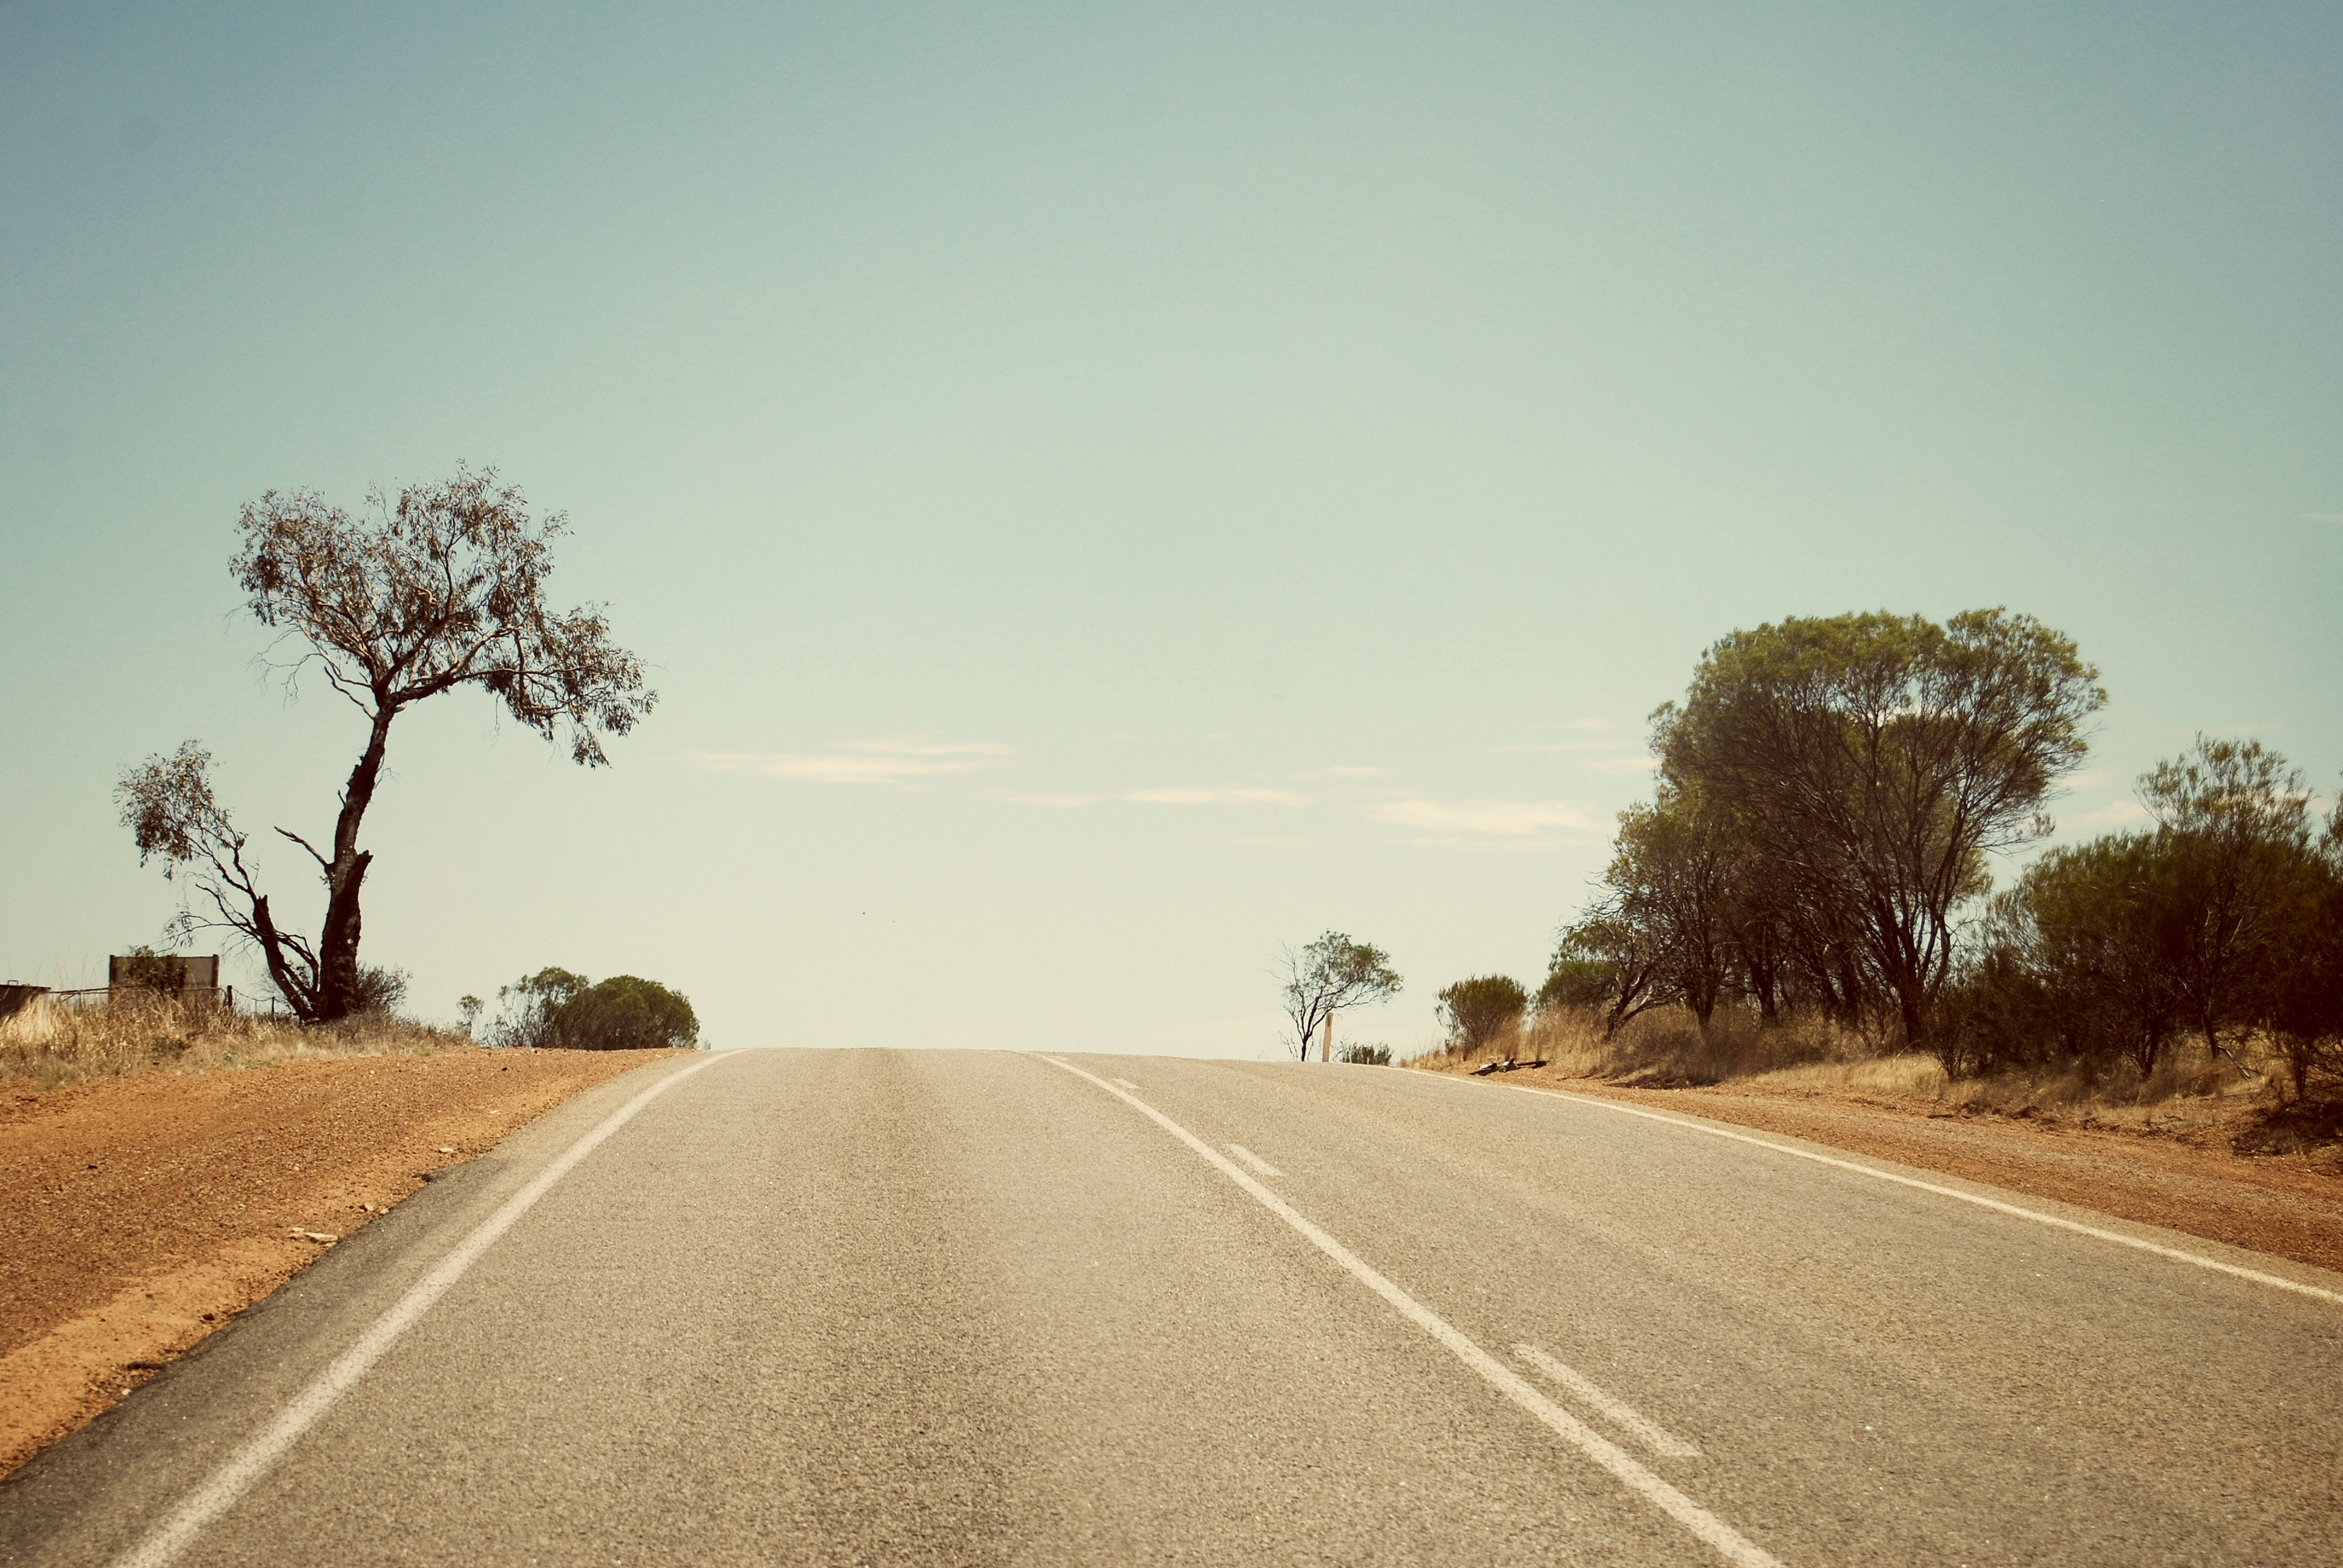 Lonely Road, Hot, Lonely, Path, Road, HQ Photo